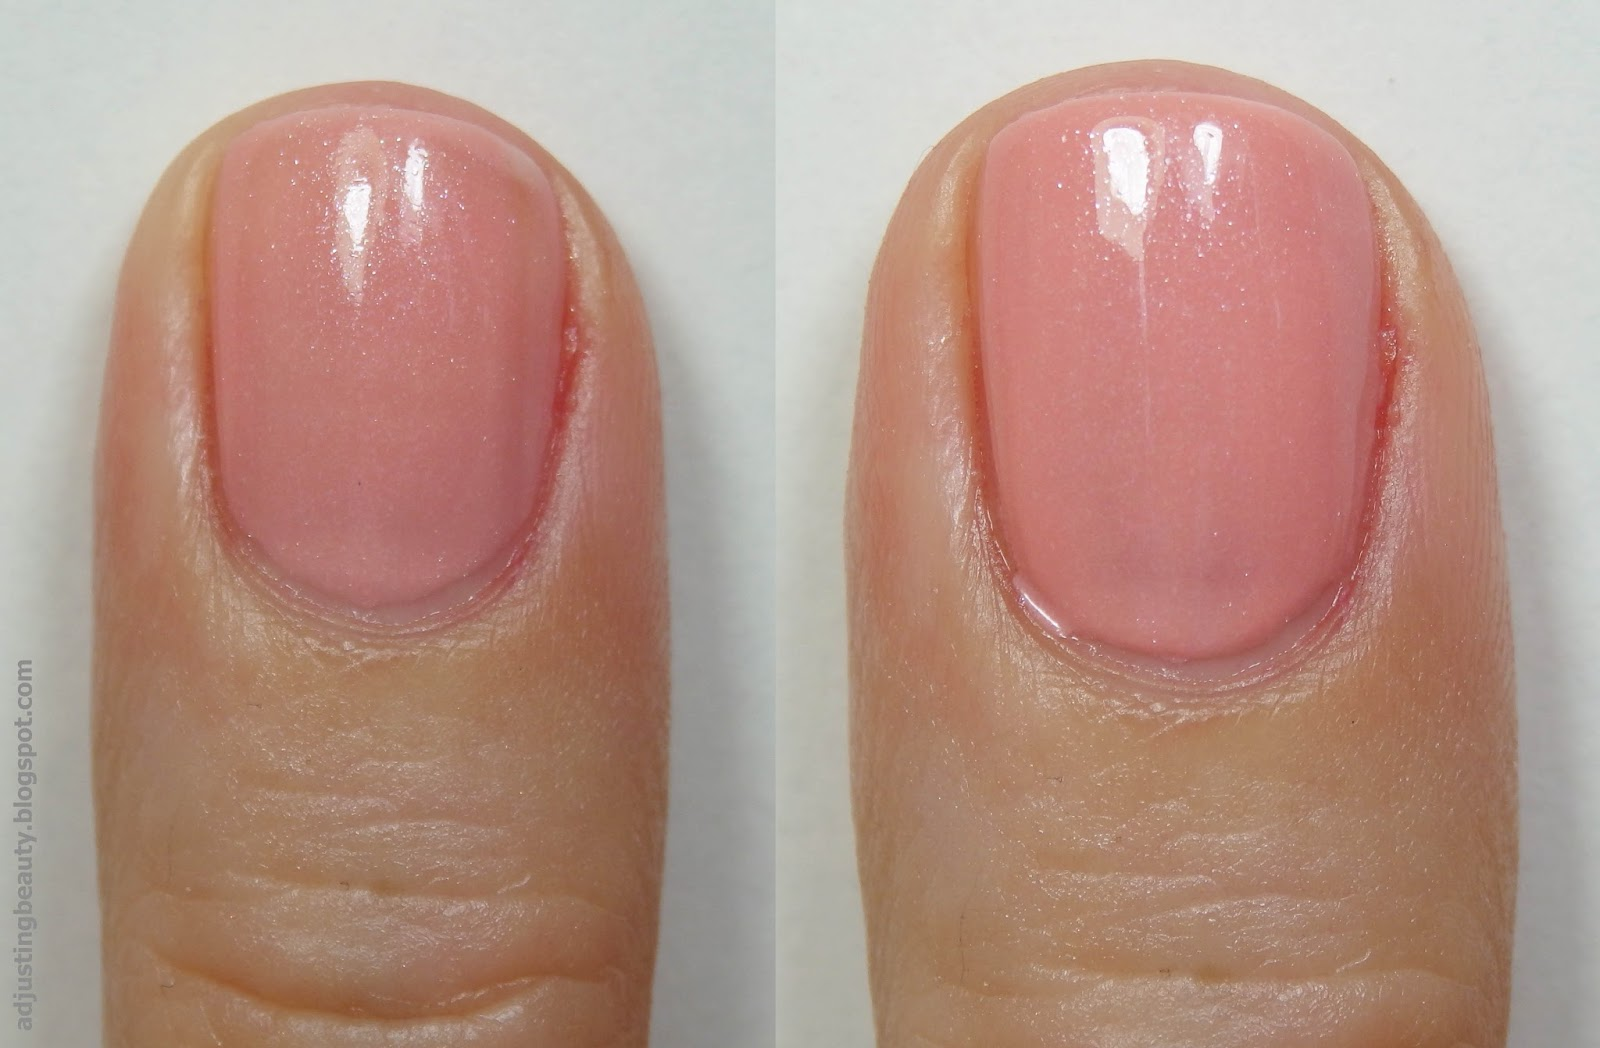 Review Avon Gel Finish Nail Polishes Creme Brulee Dazzle Pink Red Velvet Giveaway